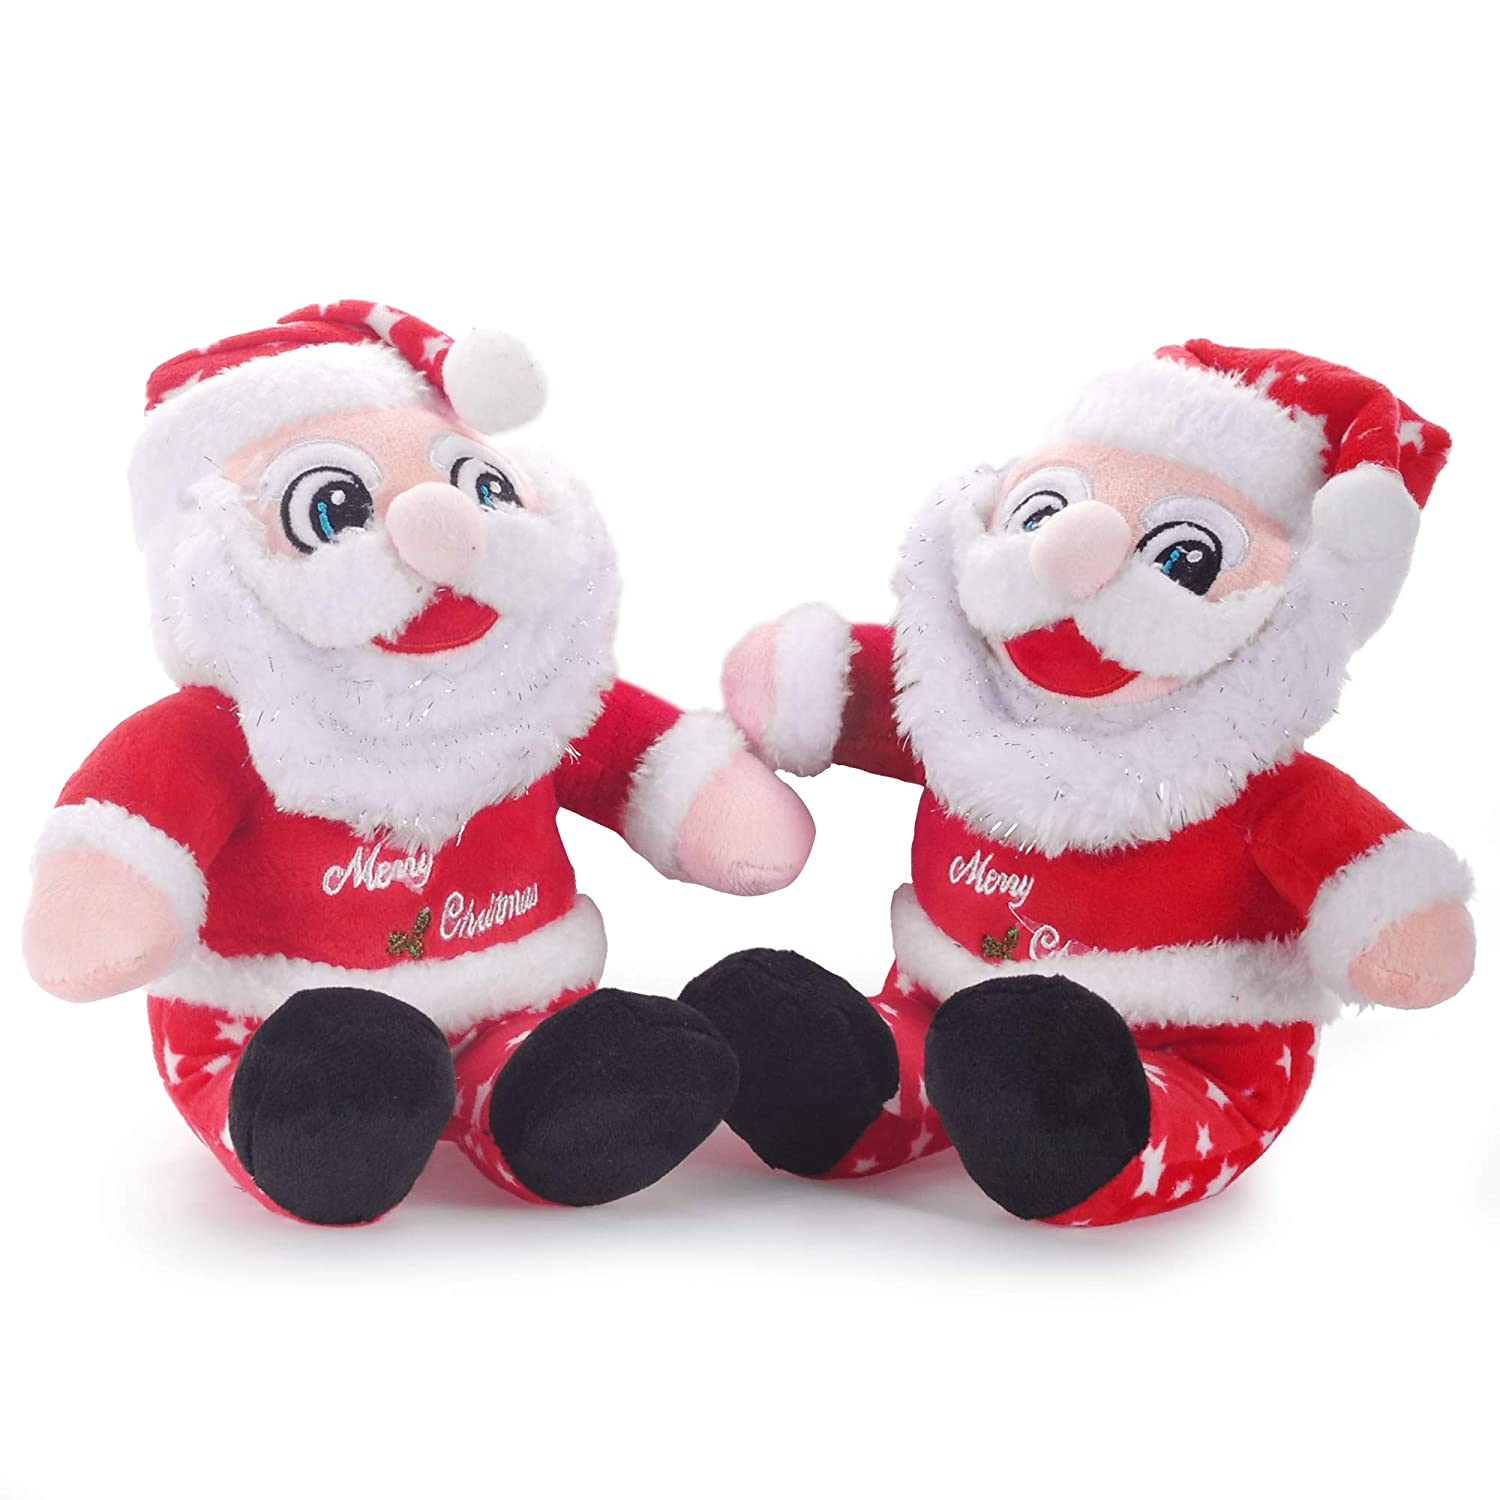 Lazada Christmas Santa Claus Stuffed Plush- Christmas Decorations Christmas Toys Gift for Children- 8.5inches 2PCS